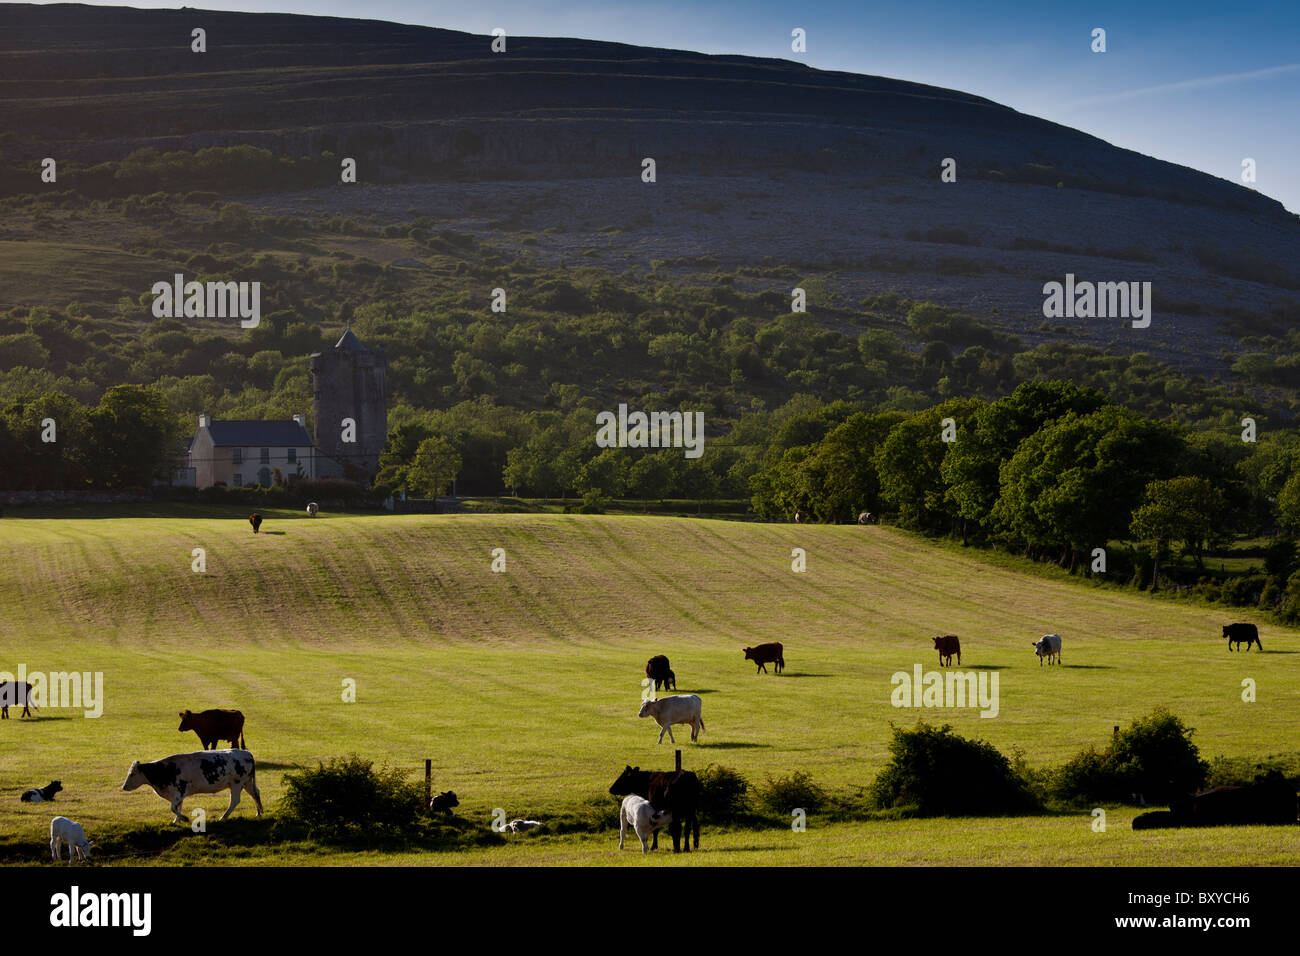 Homestead in shadow of The Burren karst landscape and Newtown Castle, Ballyvaughan, County Clare, West of Ireland - Stock Image